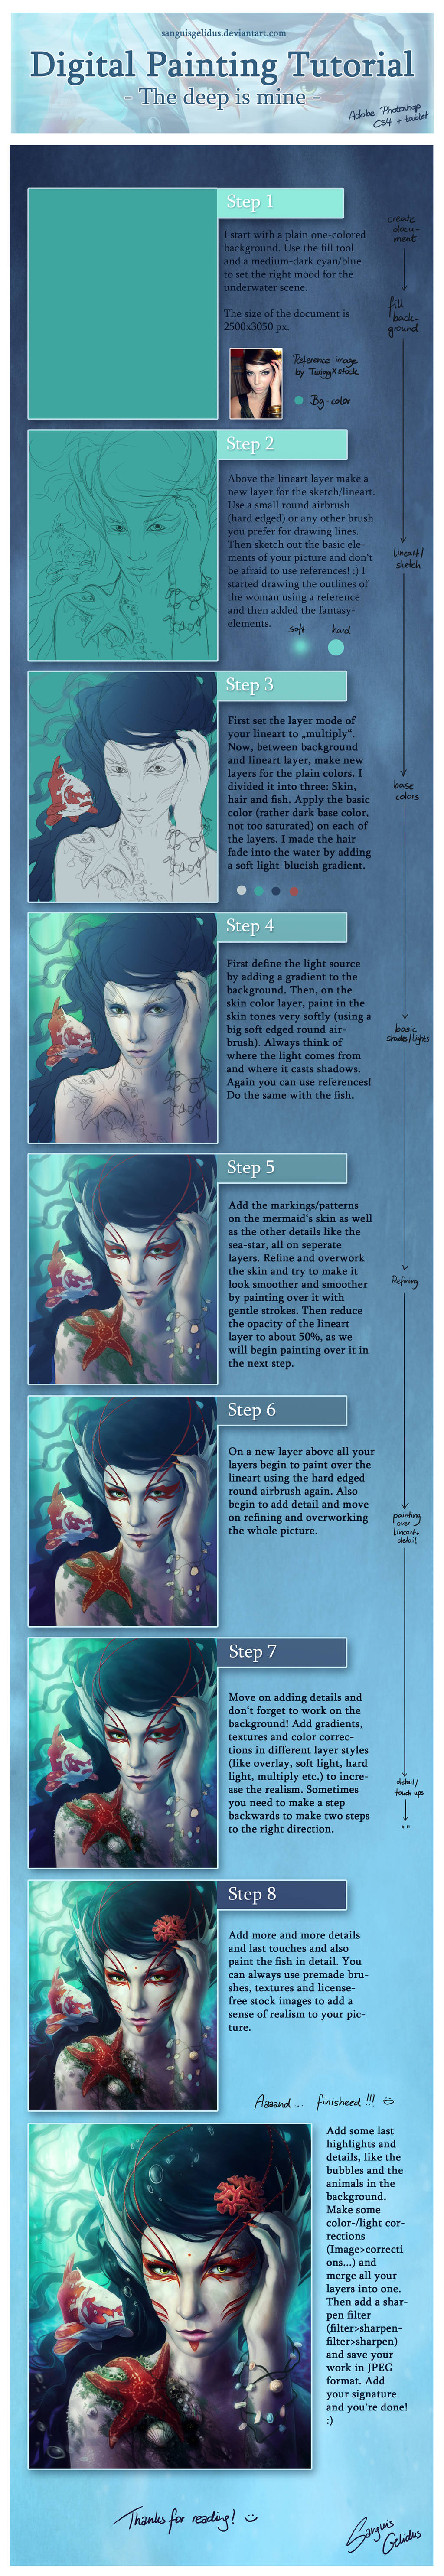 Digital Painting Tutorial by JoJoesArt